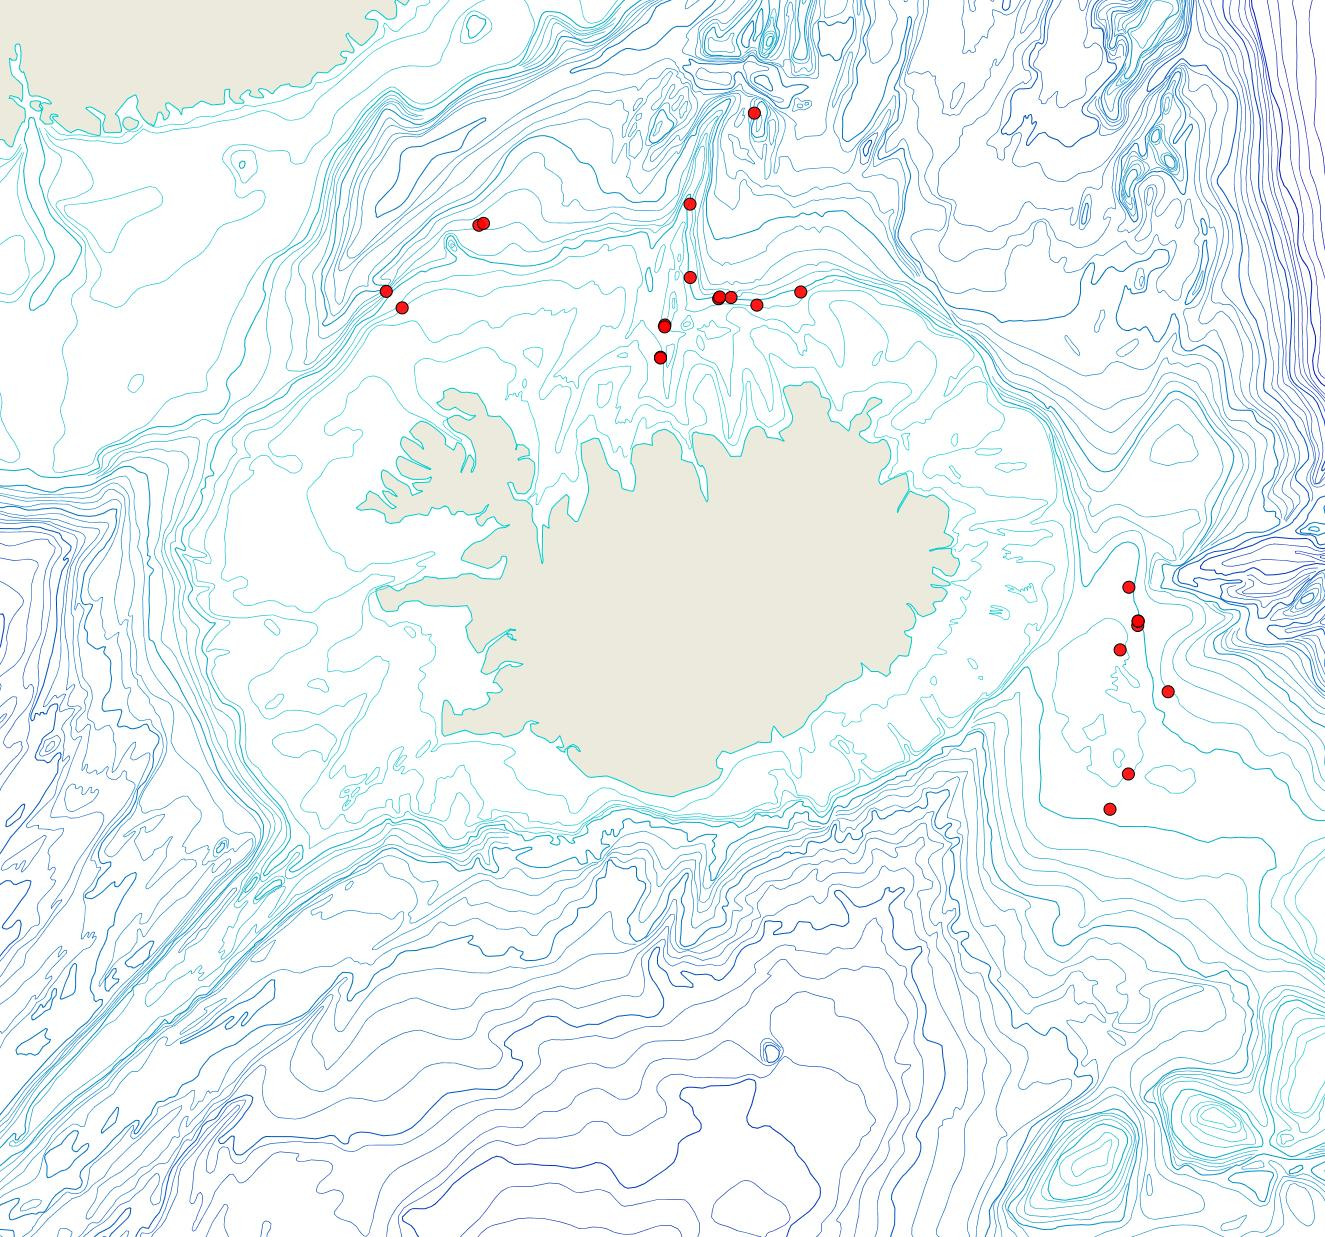 Útbreiðsla Hippomonavella borealis(Bioice samples, red dots)